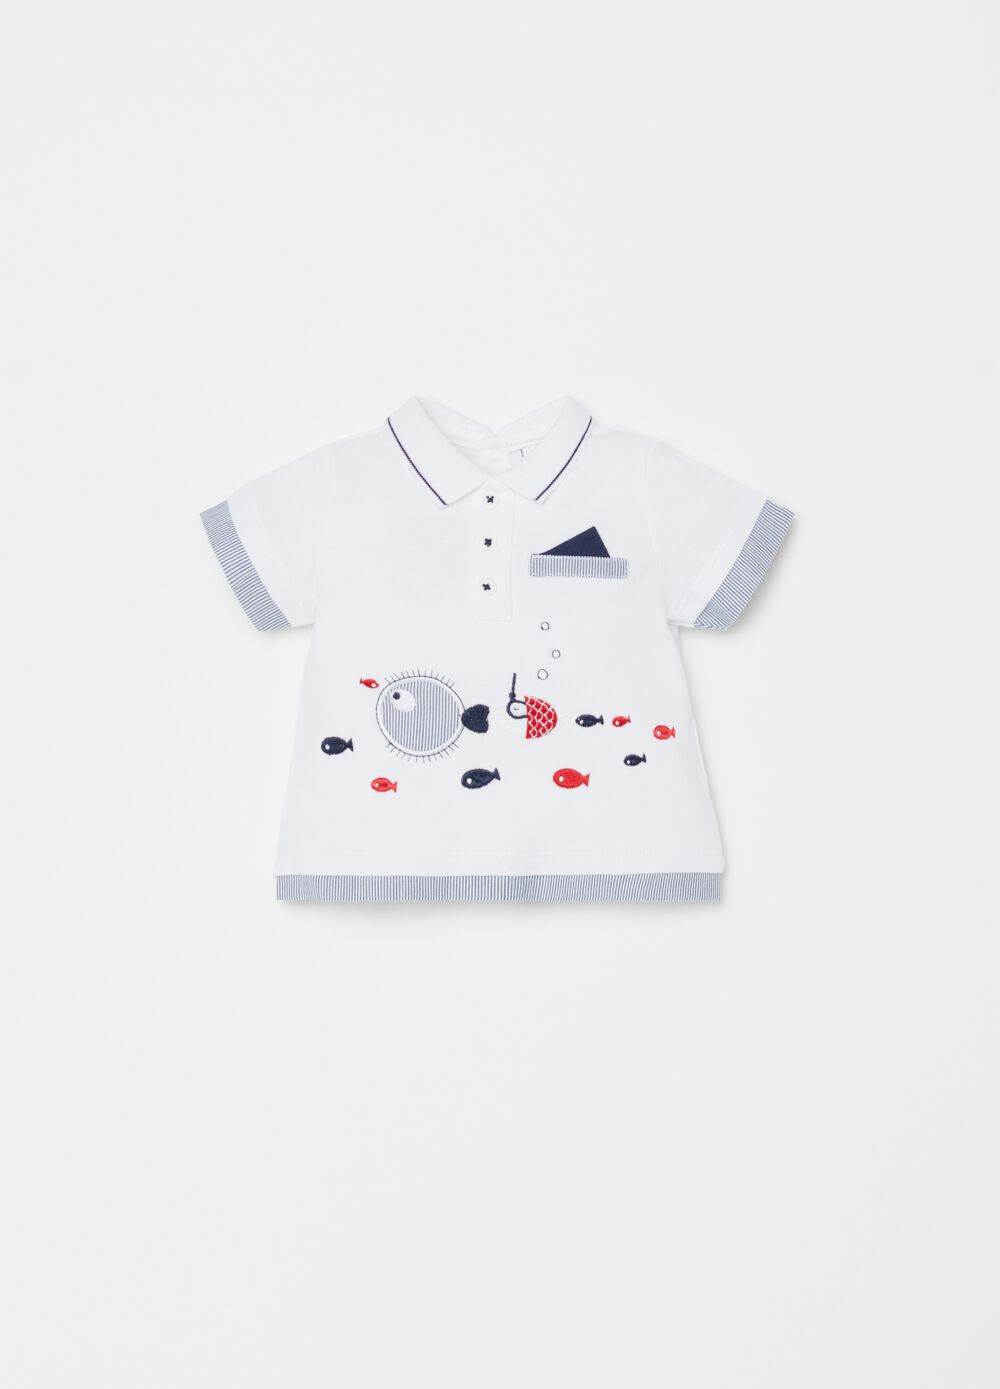 100% organic cotton polo shirt